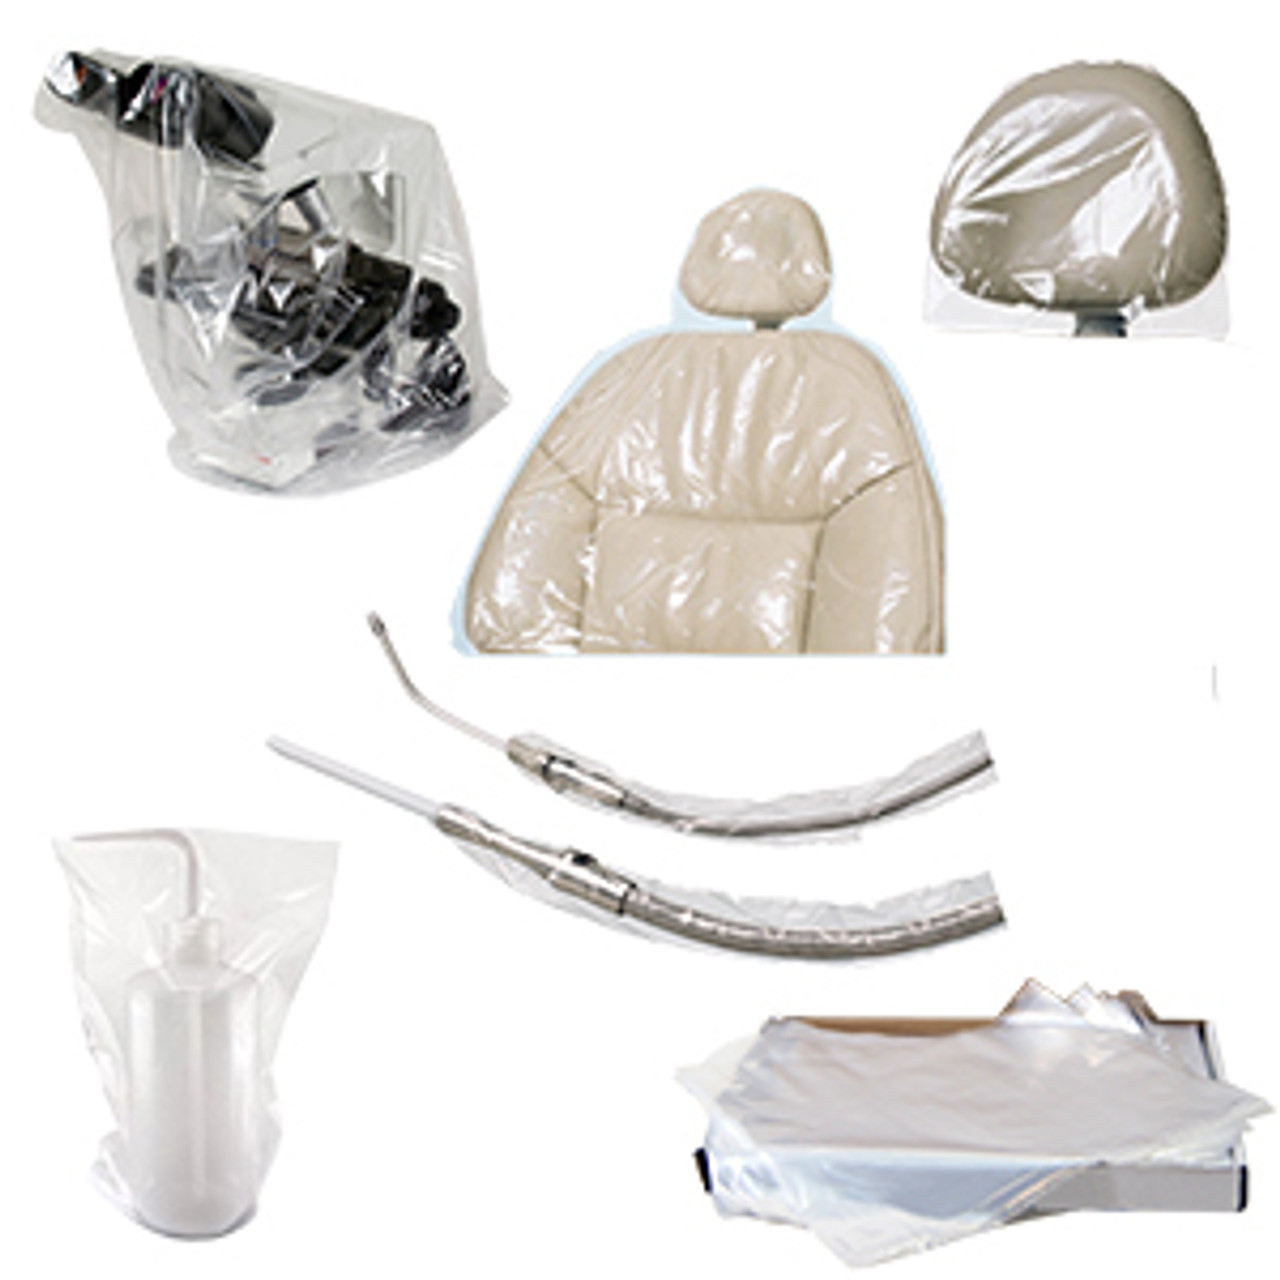 Plastic Covers & Bags